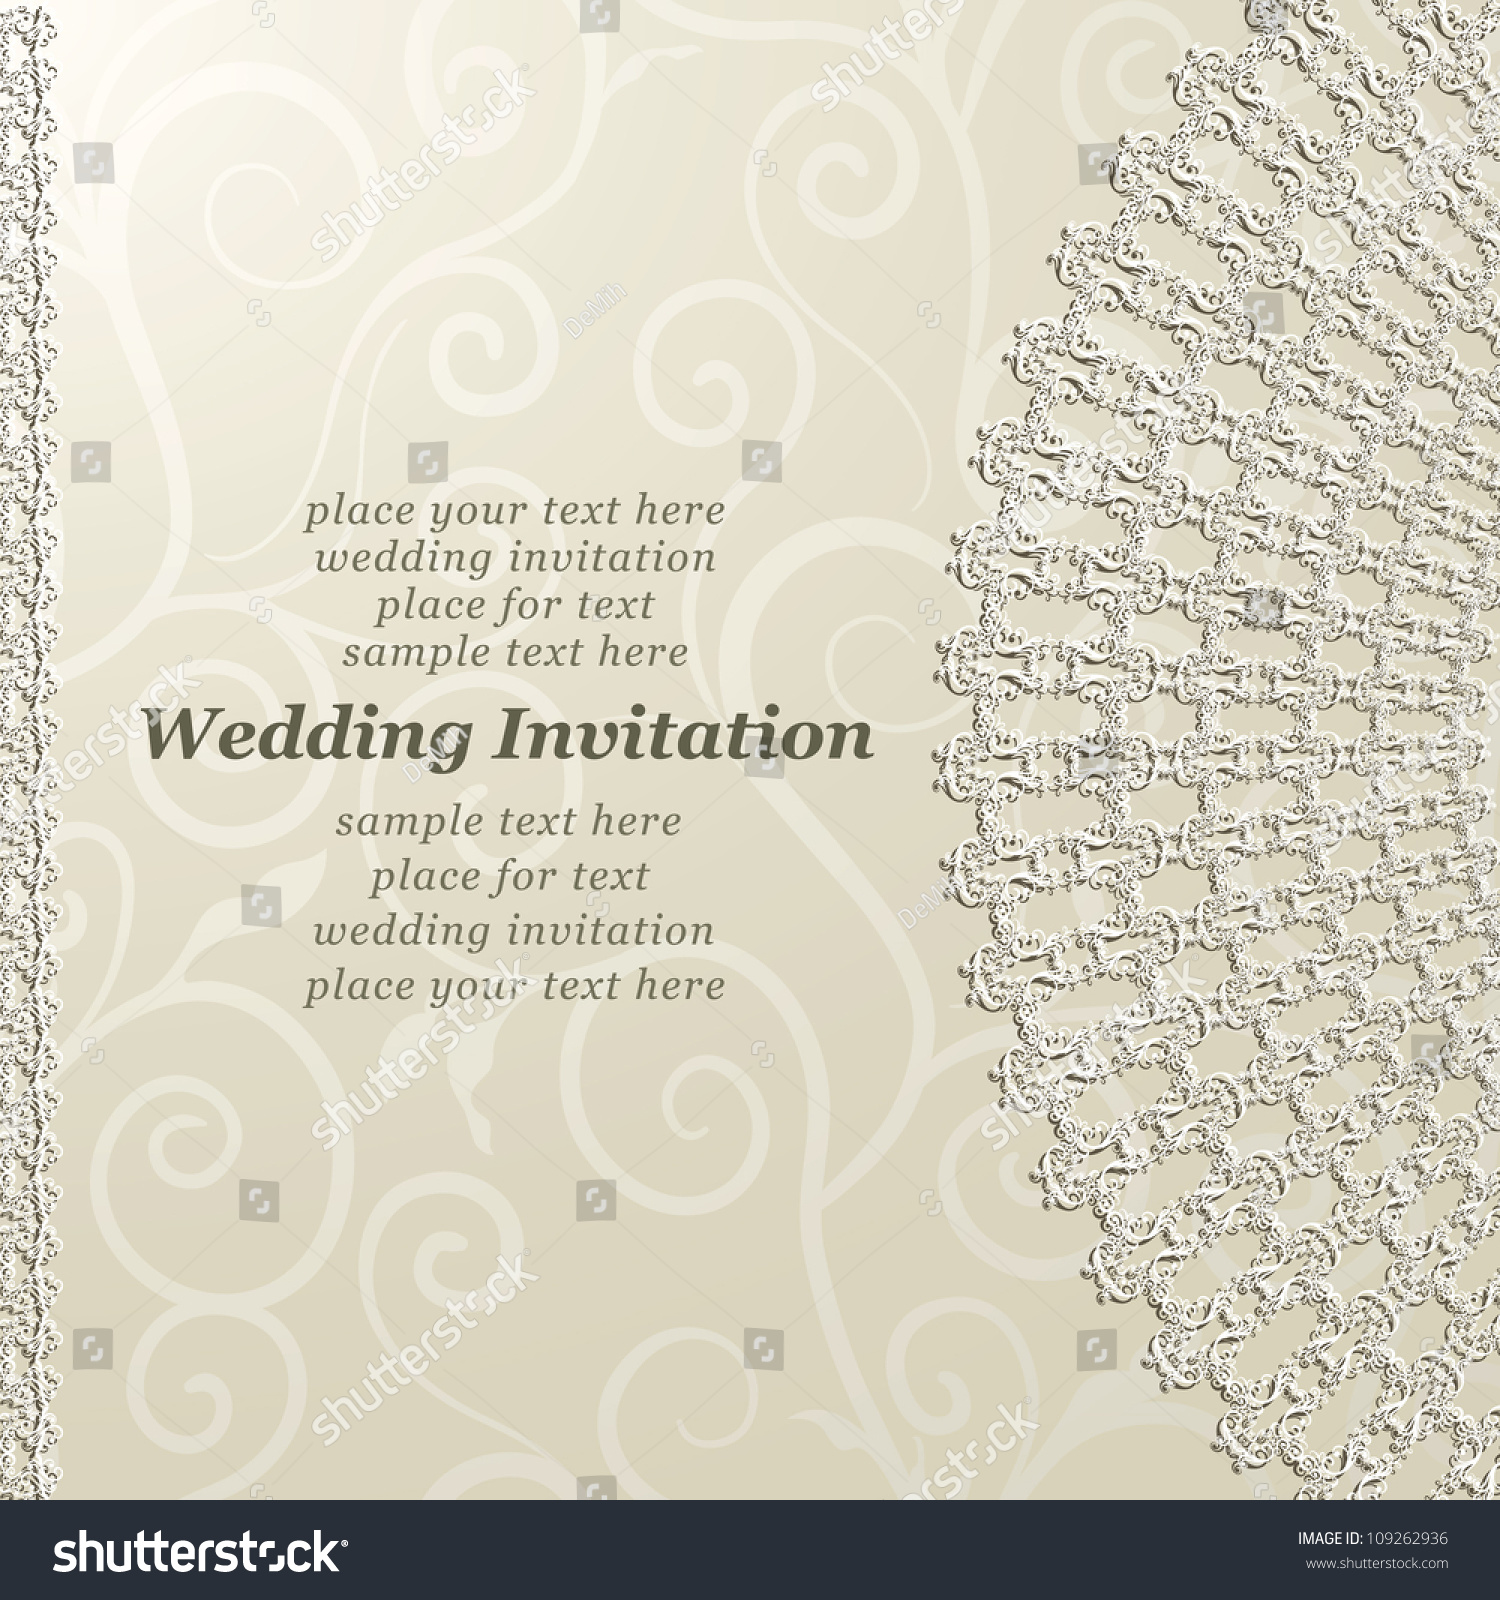 Elegant Wedding Invitation Lace Design On Stock Vector 109262936 ...